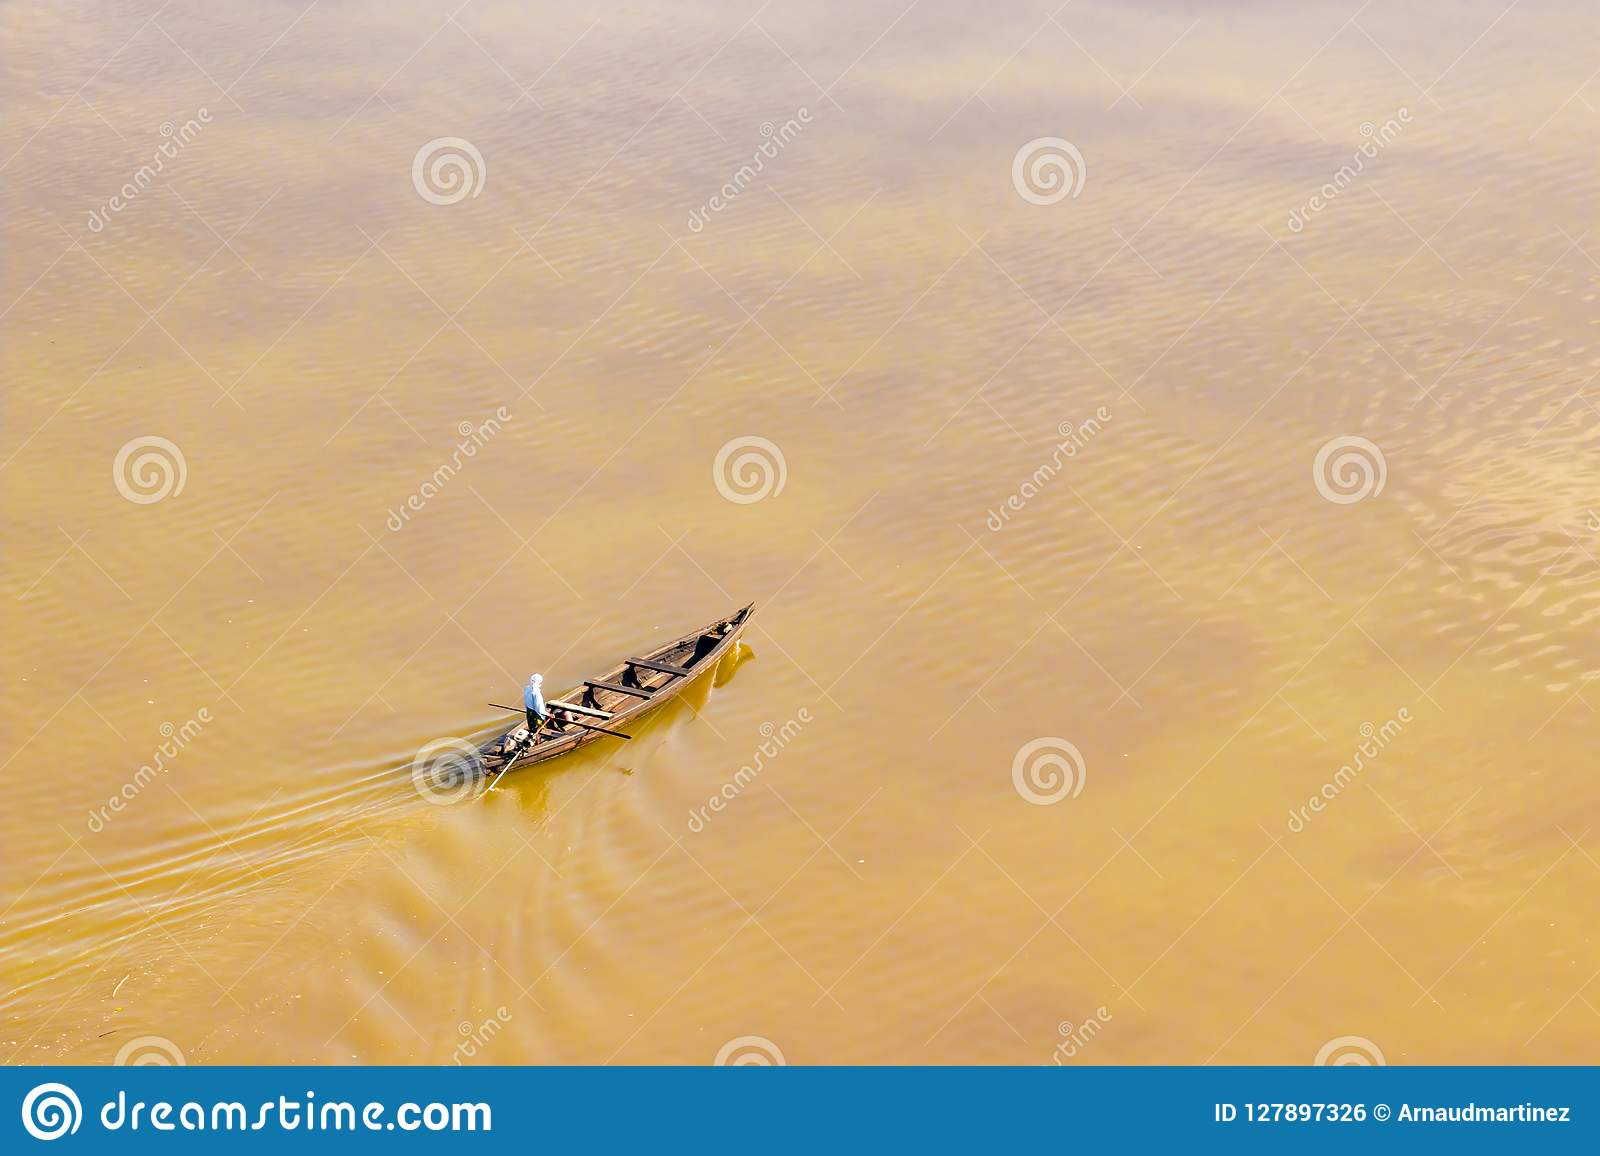 Local rescuer village boat during flooding in Kearala, India